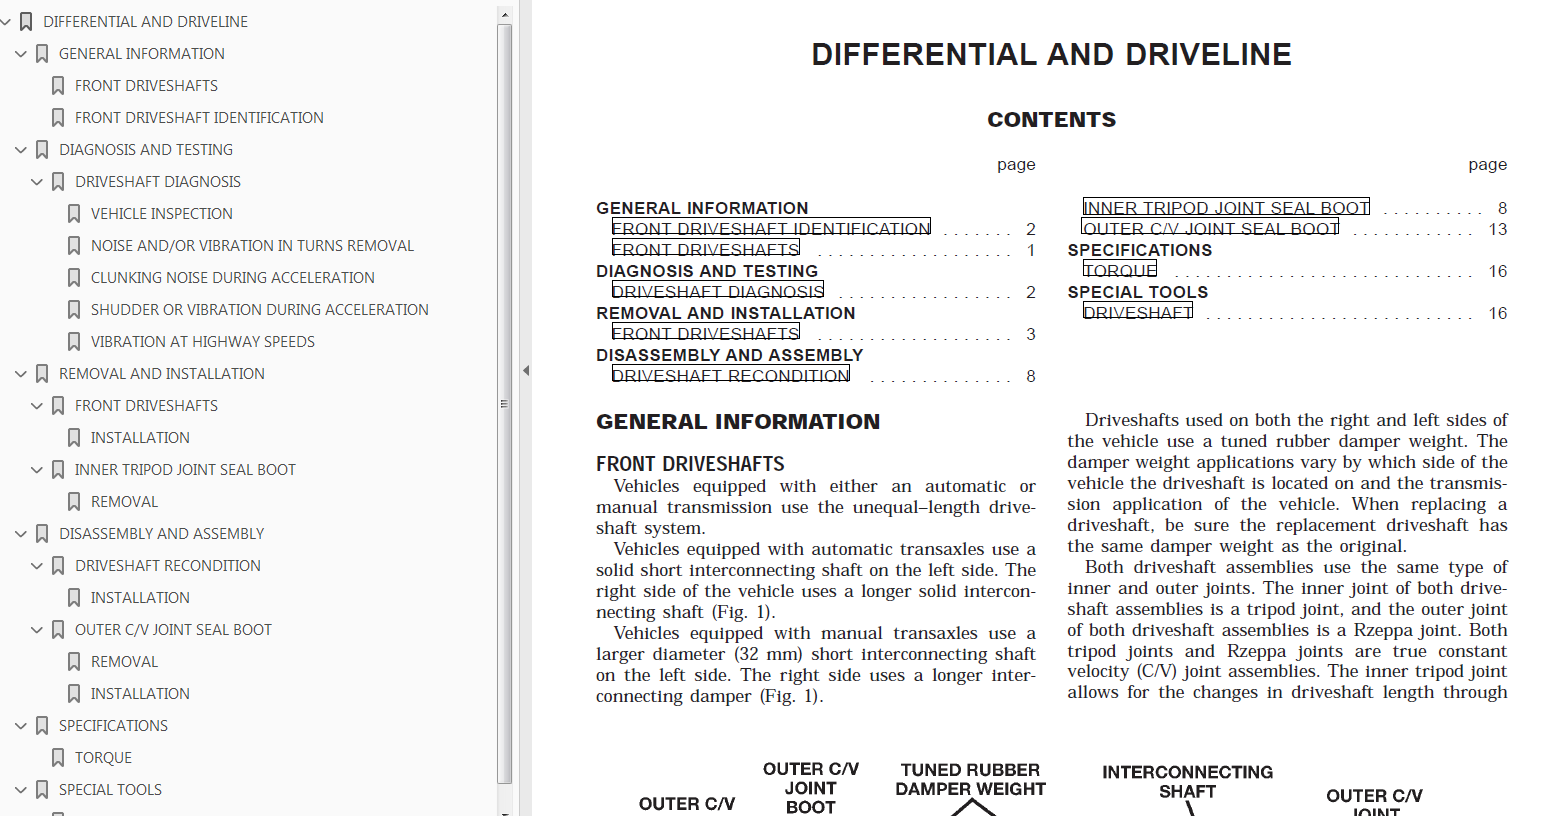 1999 dodge neon owners manual pdf